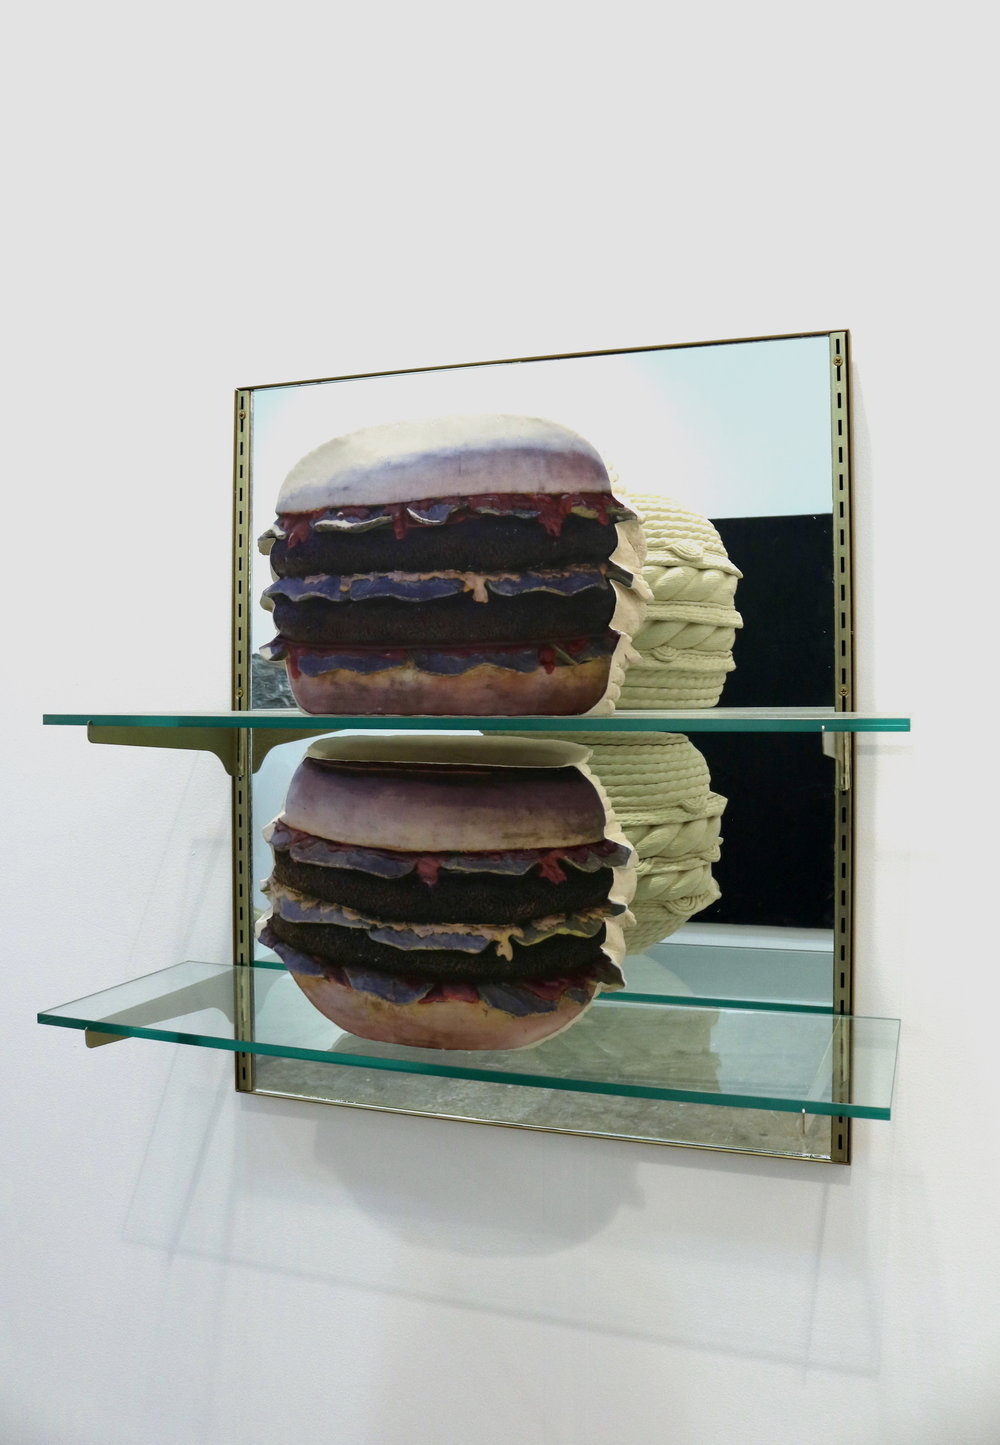 Double Double Double  (2017). Ceramic, glaze decals, mirror, brass hardware, and glass. 30 x 25 x 11 inches